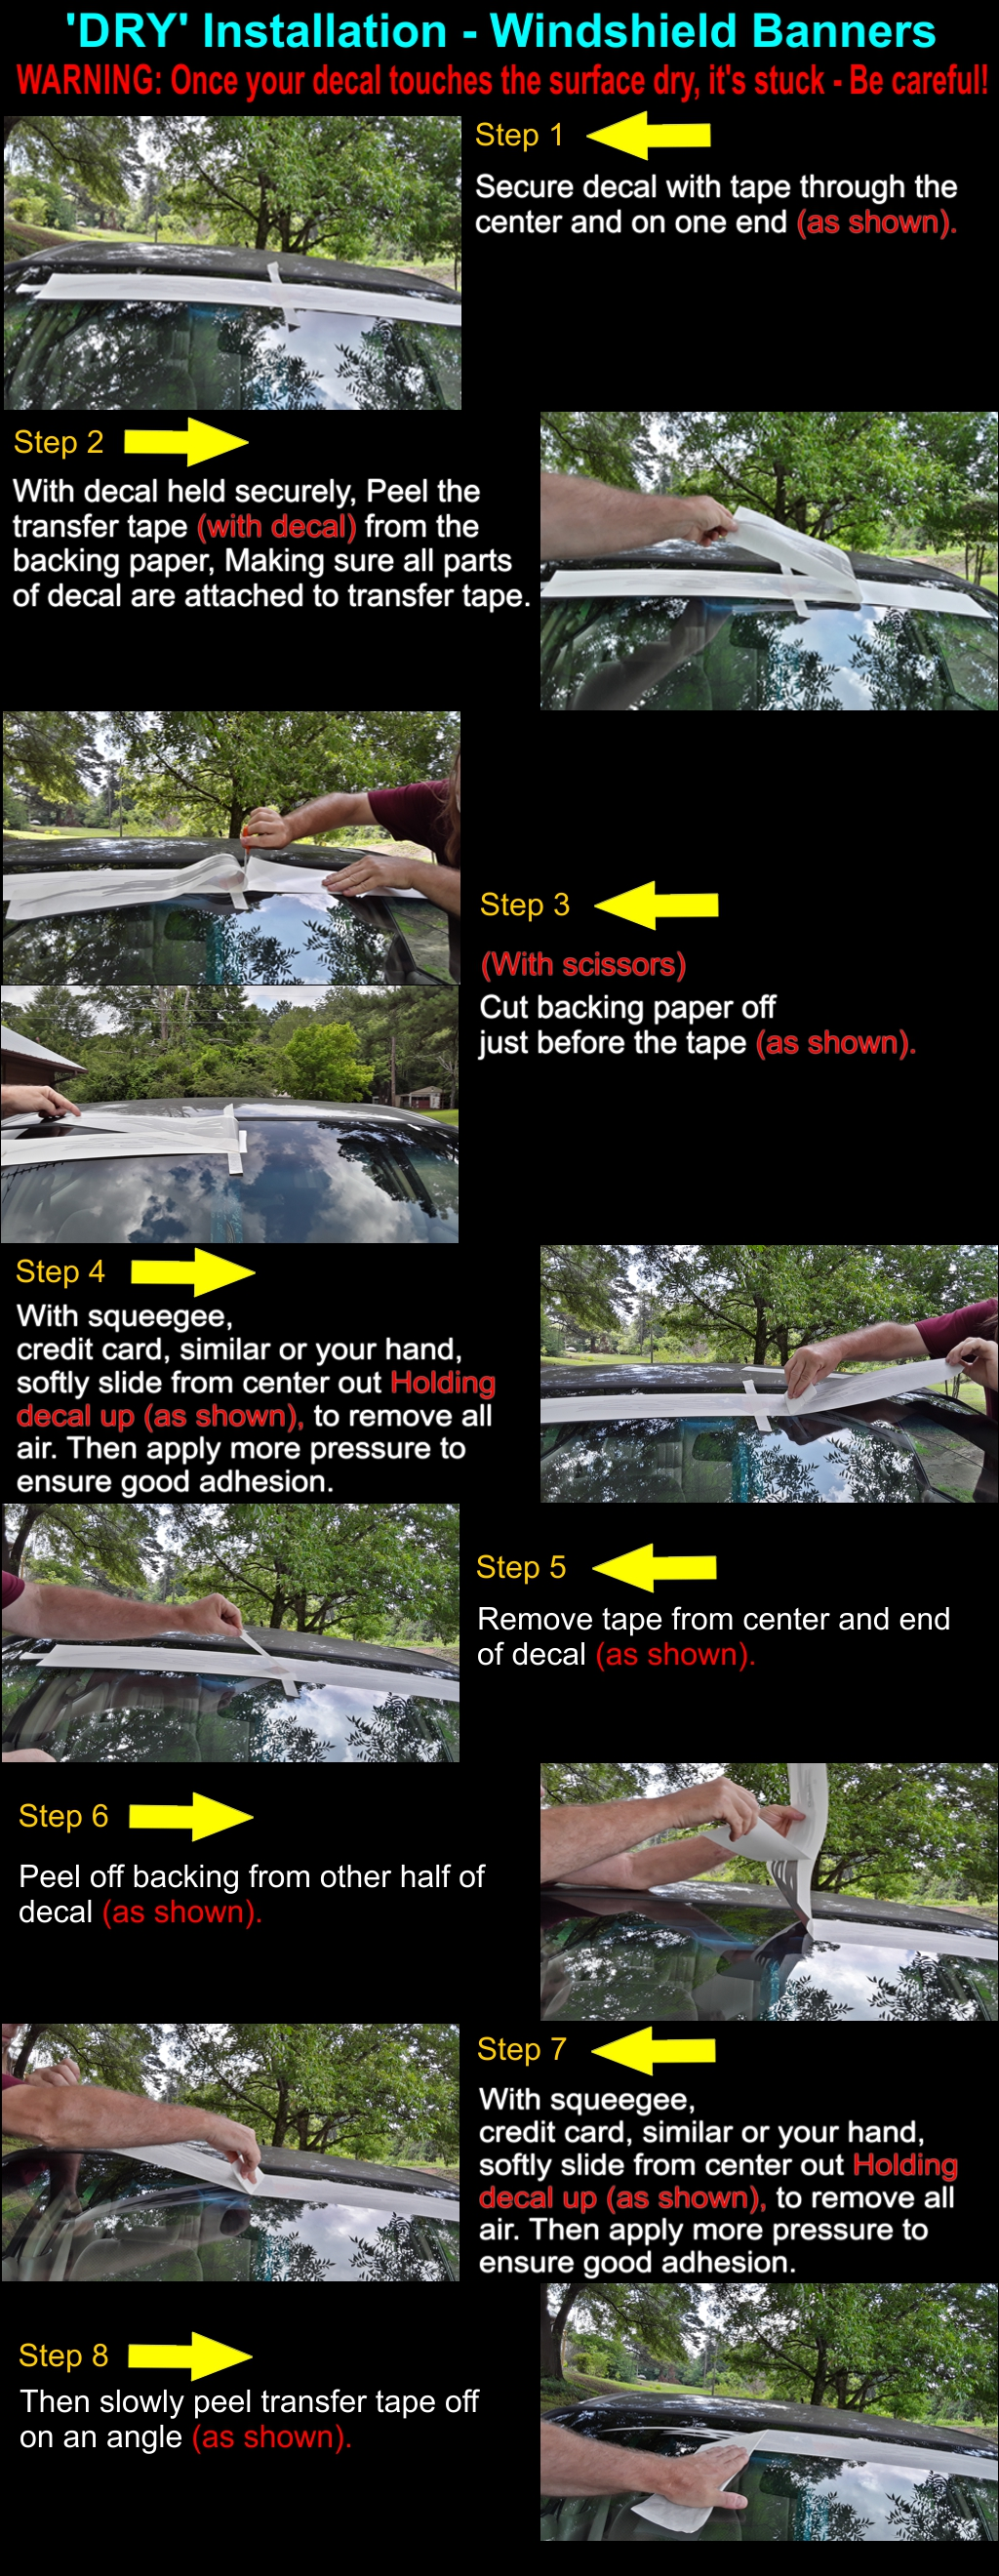 windshield-dry-install-for-web-site-2019.jpg